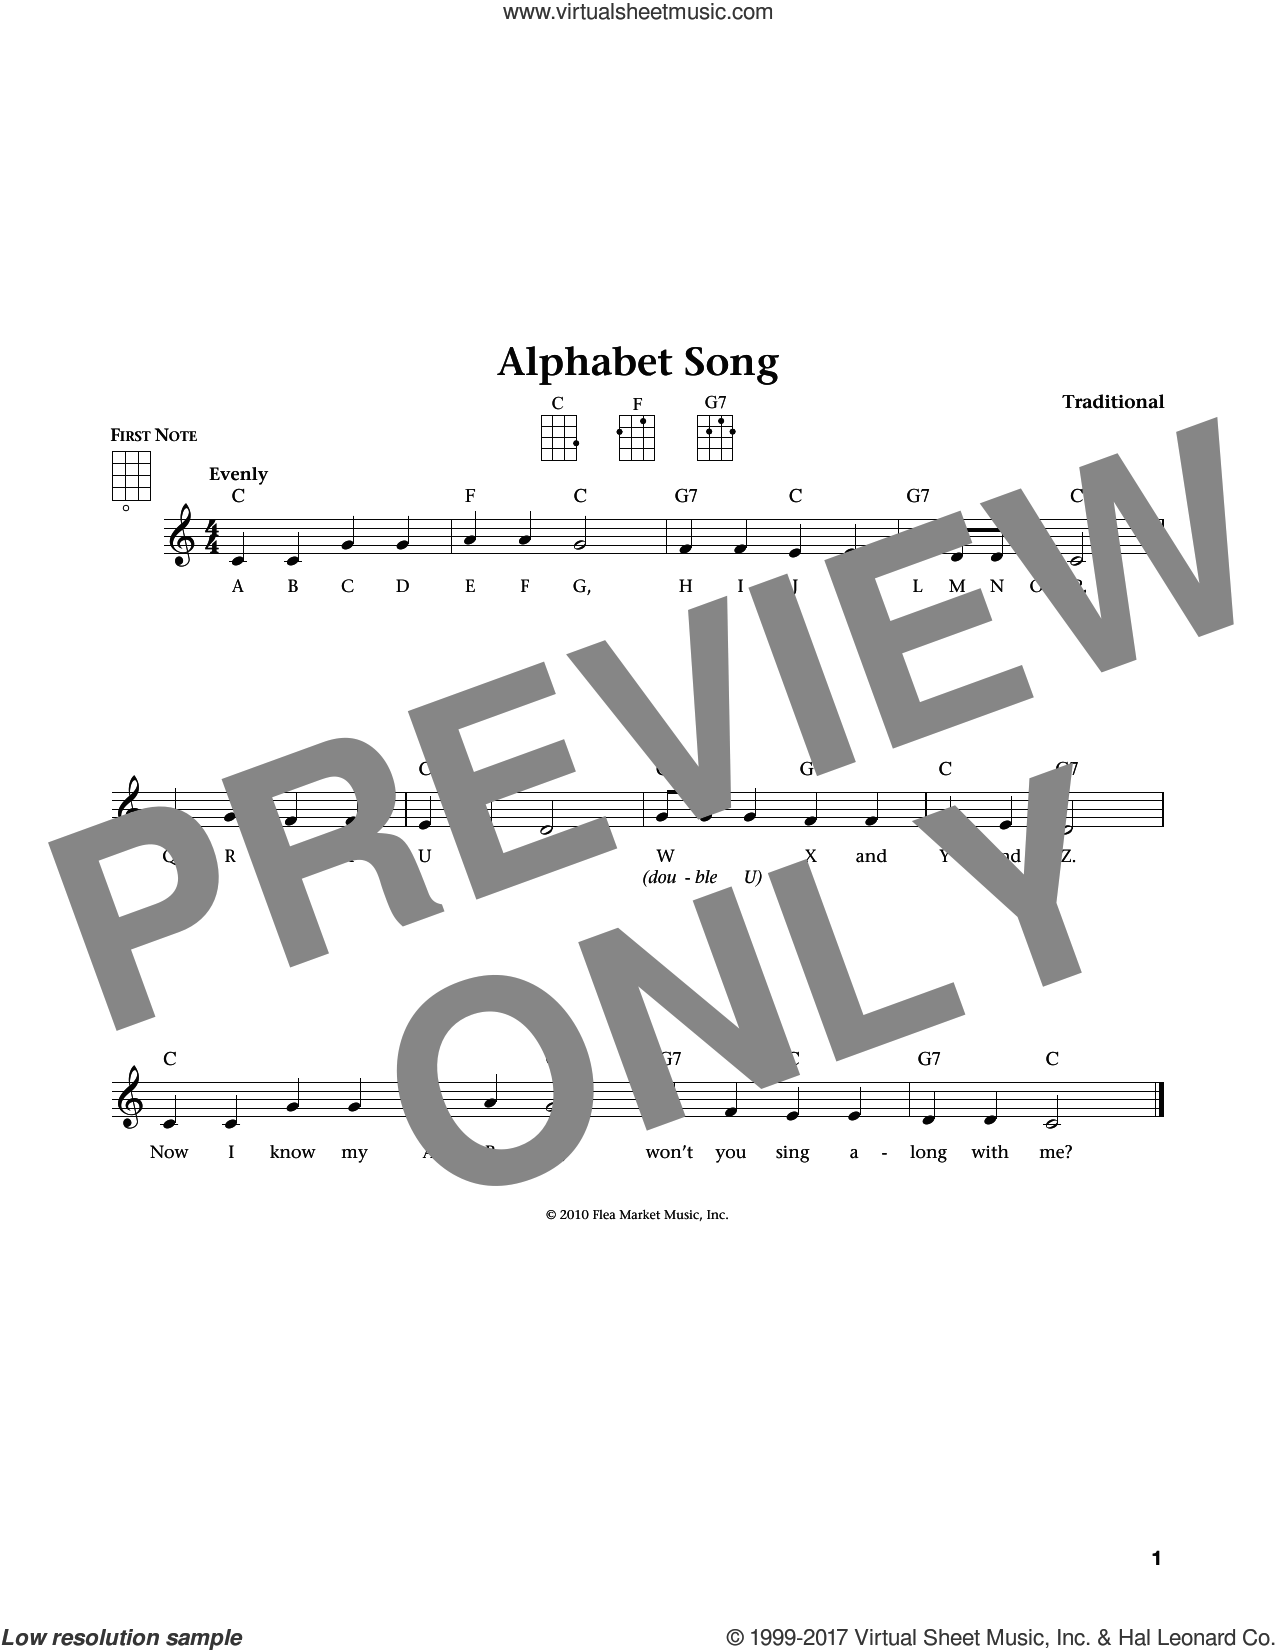 Alphabet Song (from The Daily Ukulele) (arr. Liz and Jim Beloff) sheet music for ukulele , Jim Beloff and Liz Beloff, intermediate skill level